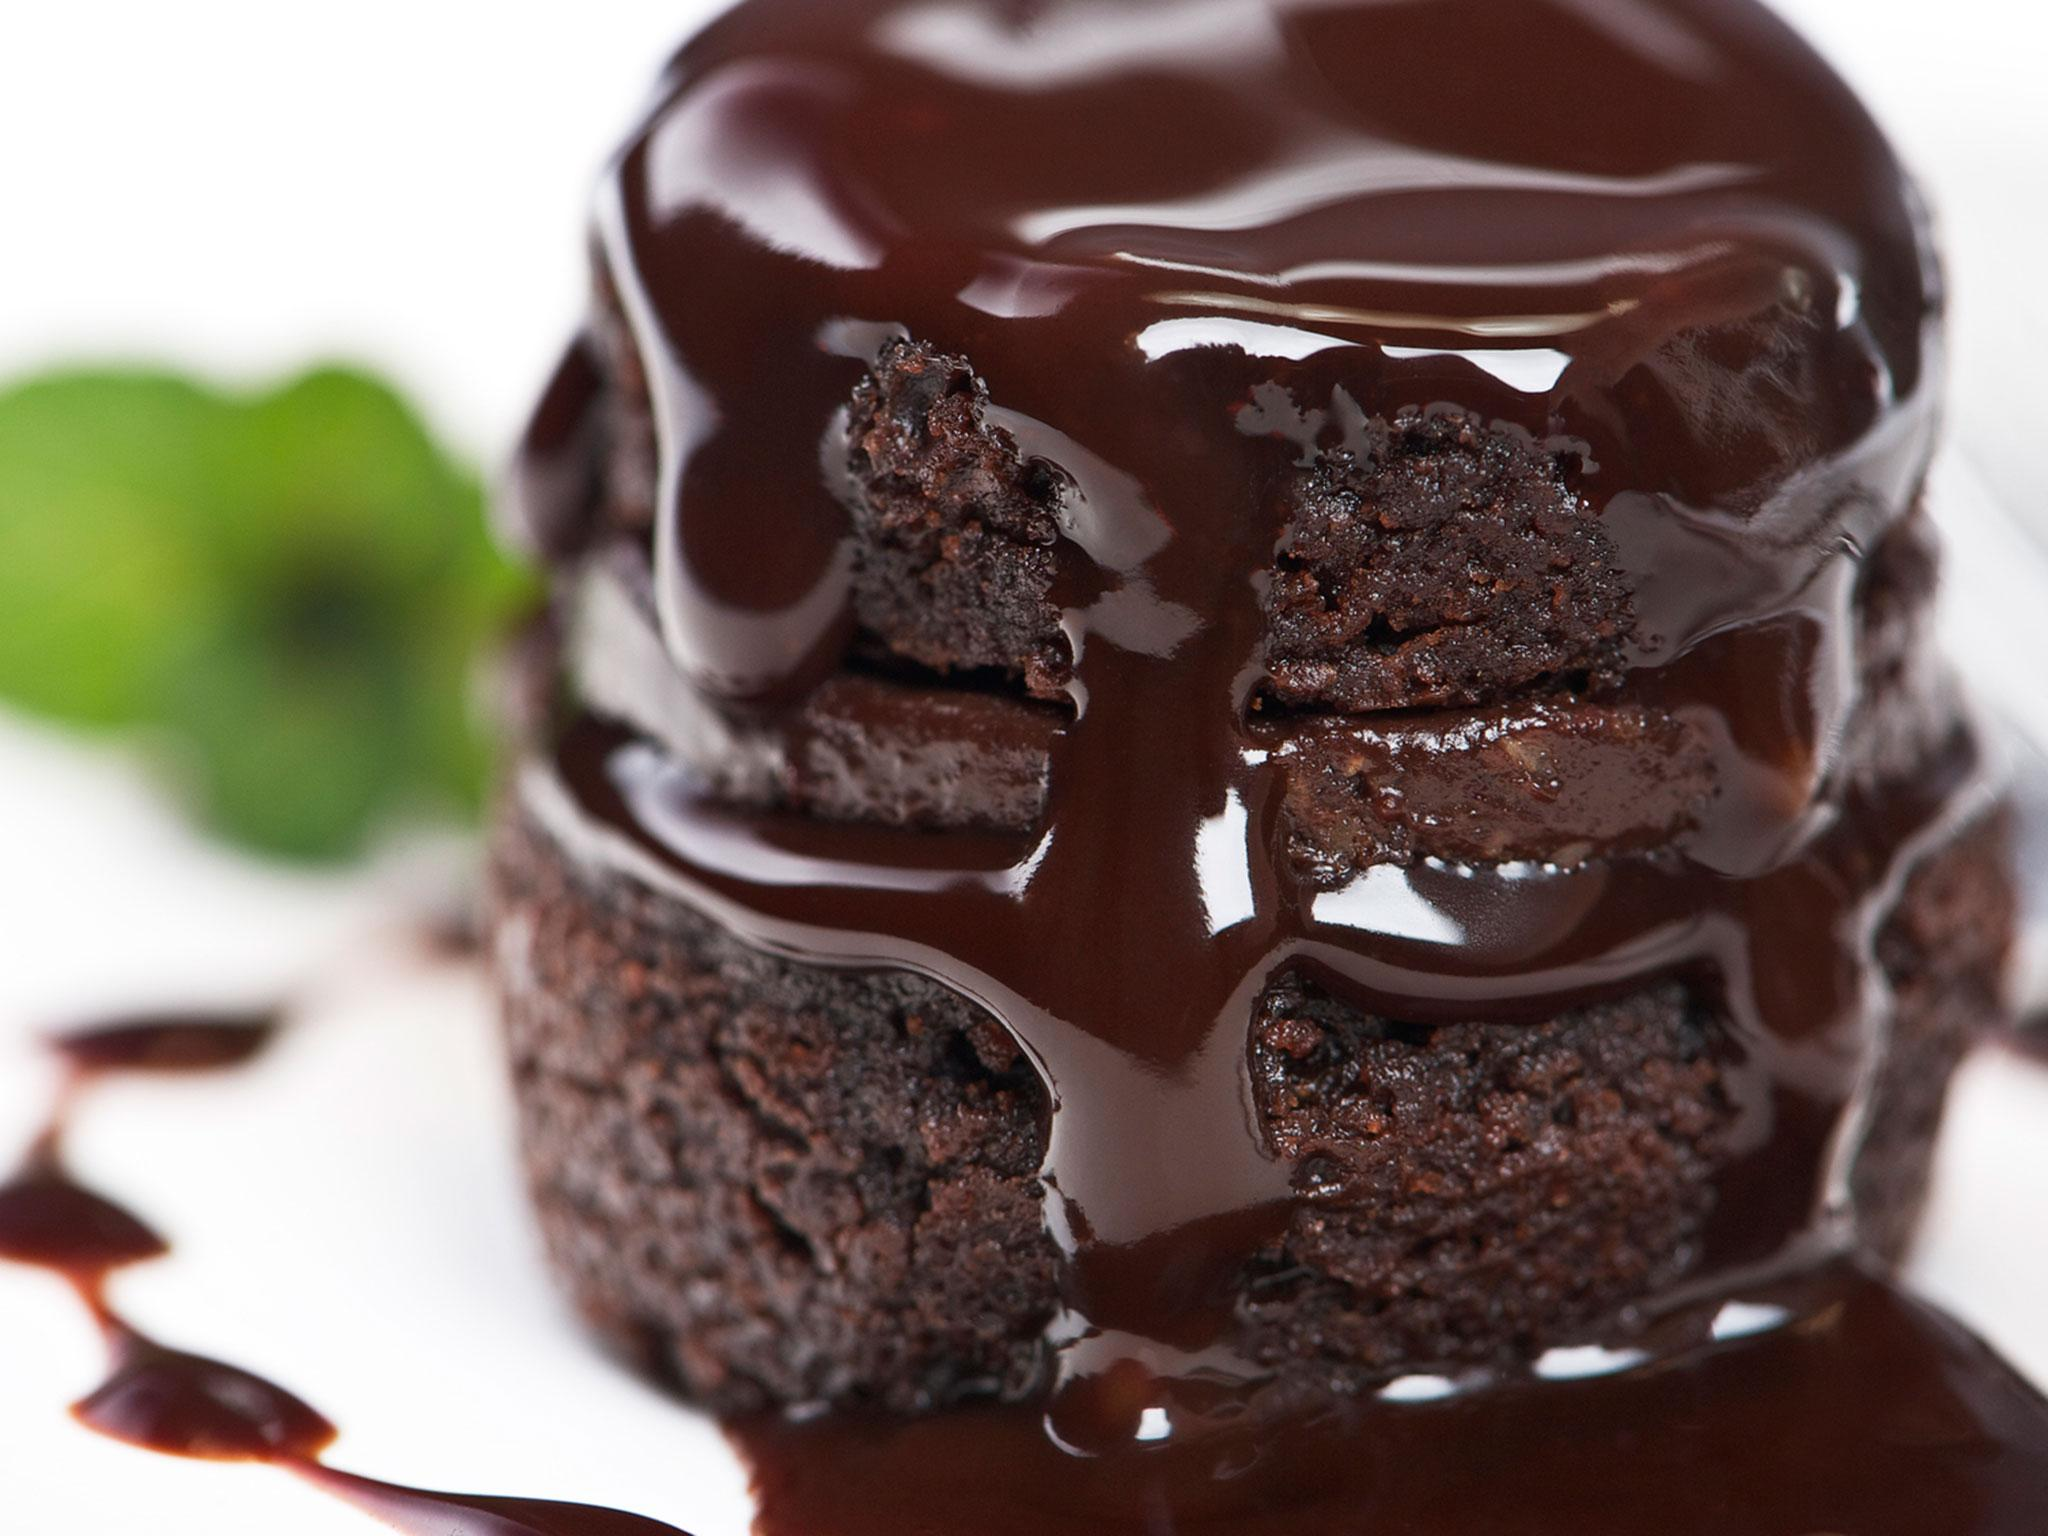 Chocolate cake for breakfast the food trend that may actually be coming in 2017 the independent - Herve cuisine cake chocolat ...